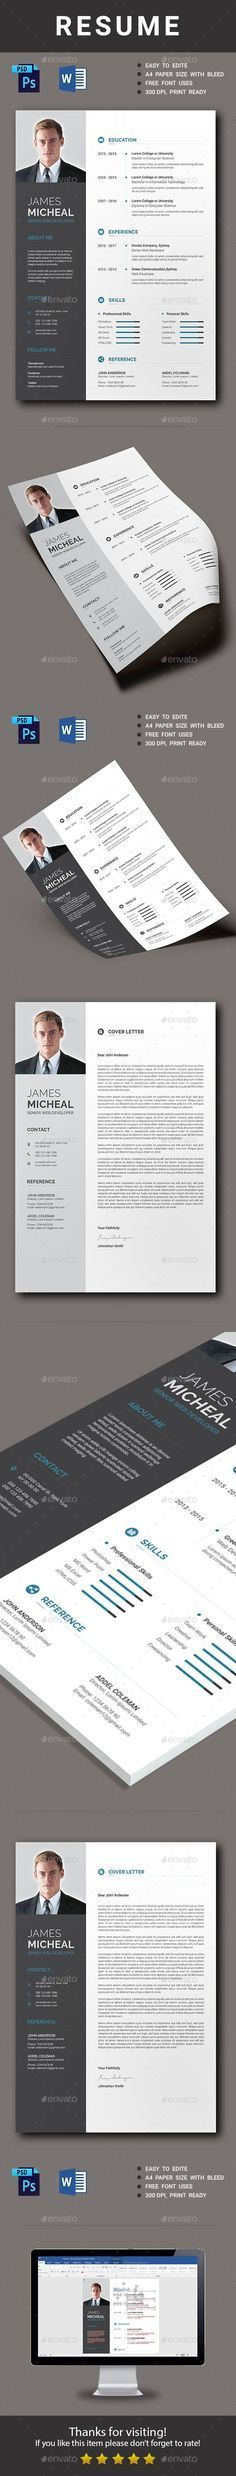 operations supervisor resume%0A Business infographic    Resume Resumes Stationery Download here   graphicriver net